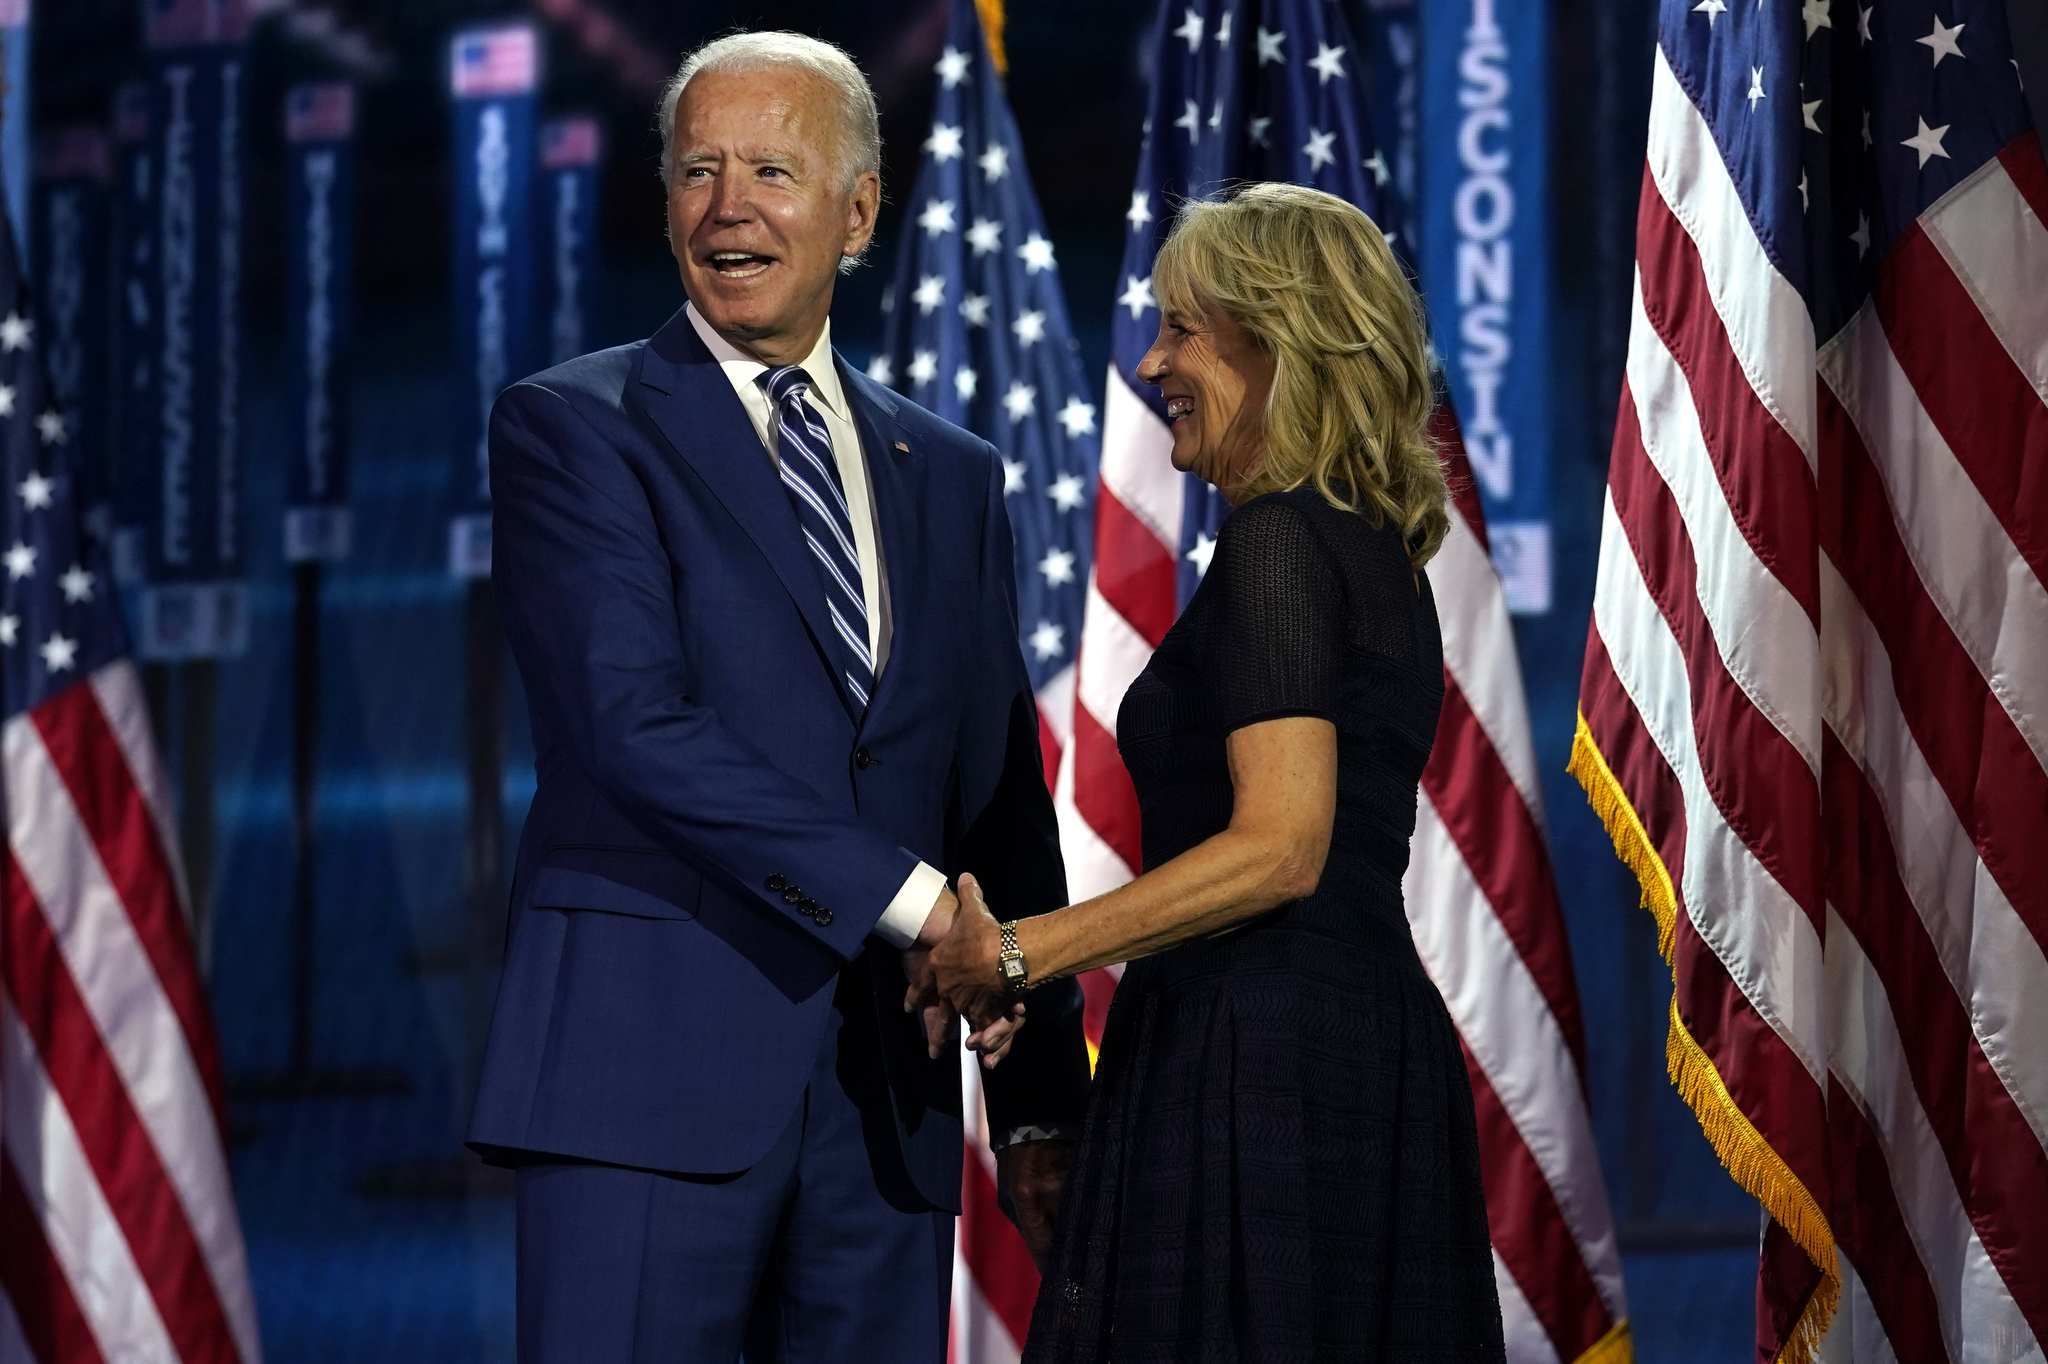 Democratic presidential candidate Joe Biden, and his wife Jill Biden, take the stage during the third day of the Democratic National Convention.